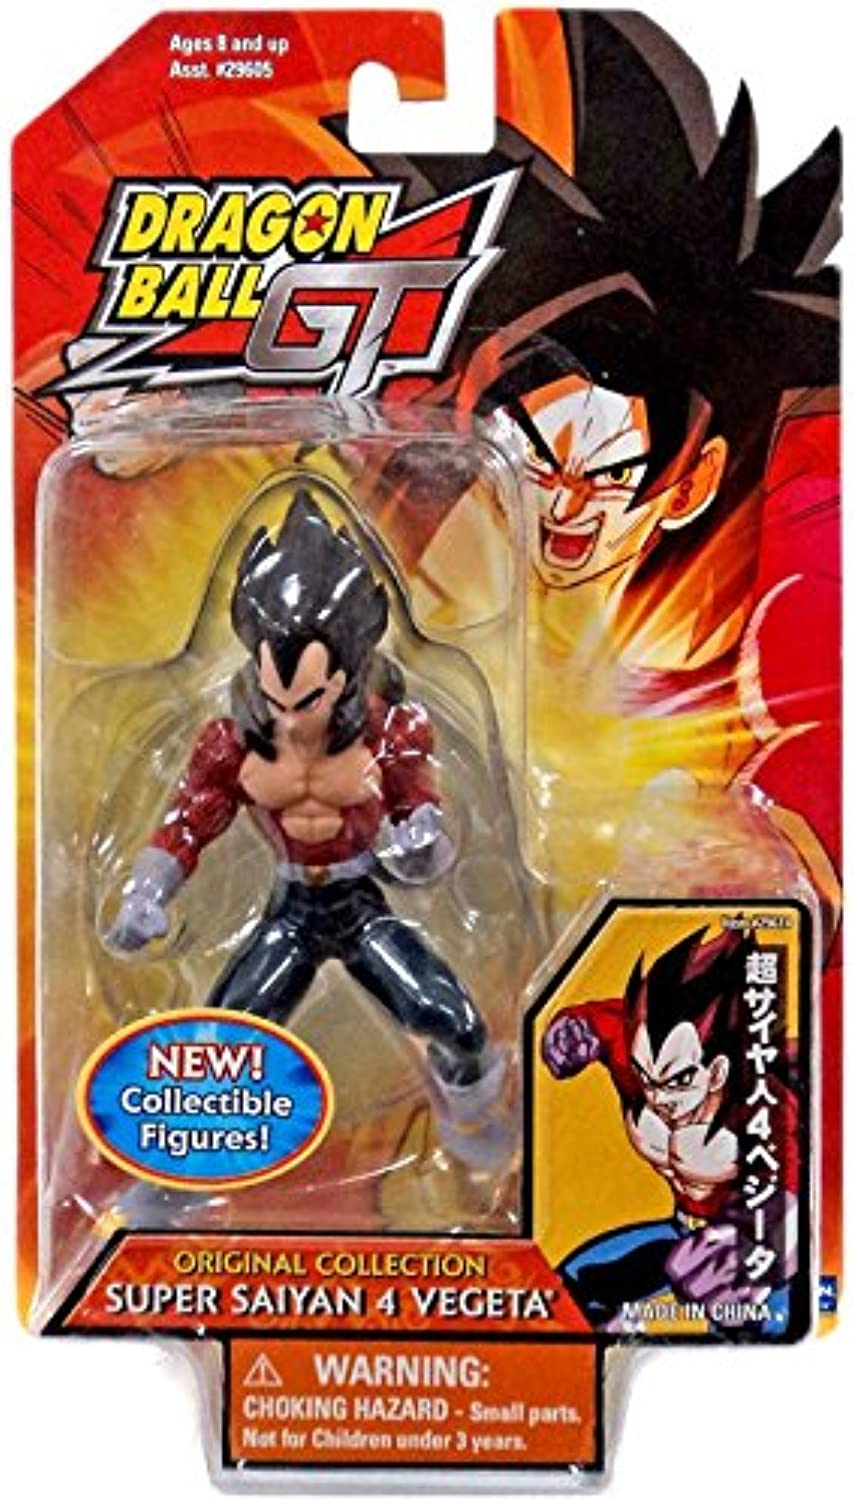 Dragonball Z GT SS 4 VEGETA collectible figure & stand